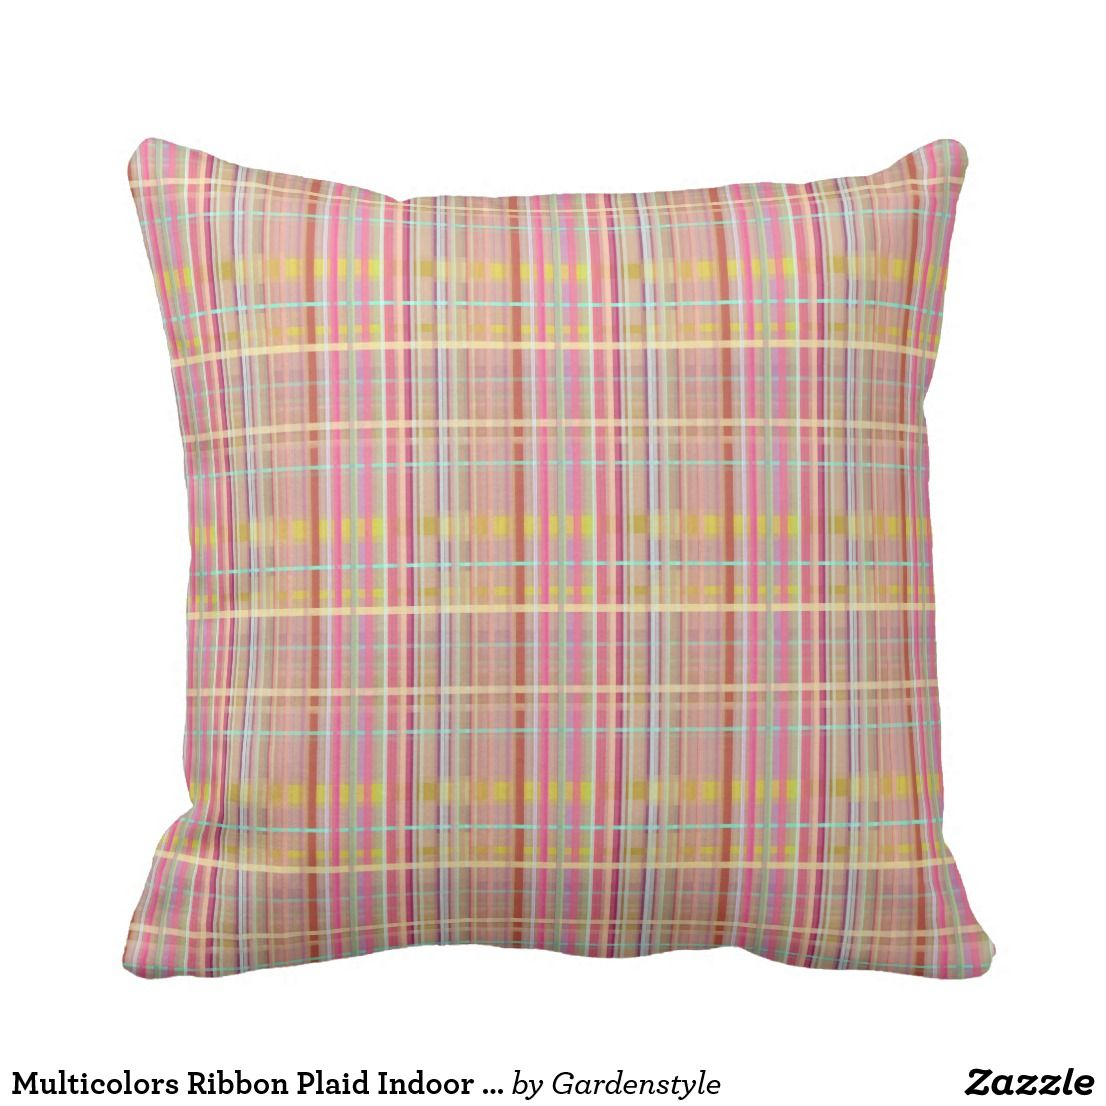 Multicolors ribbon plaid indoor pillow x pillows and throw pillows